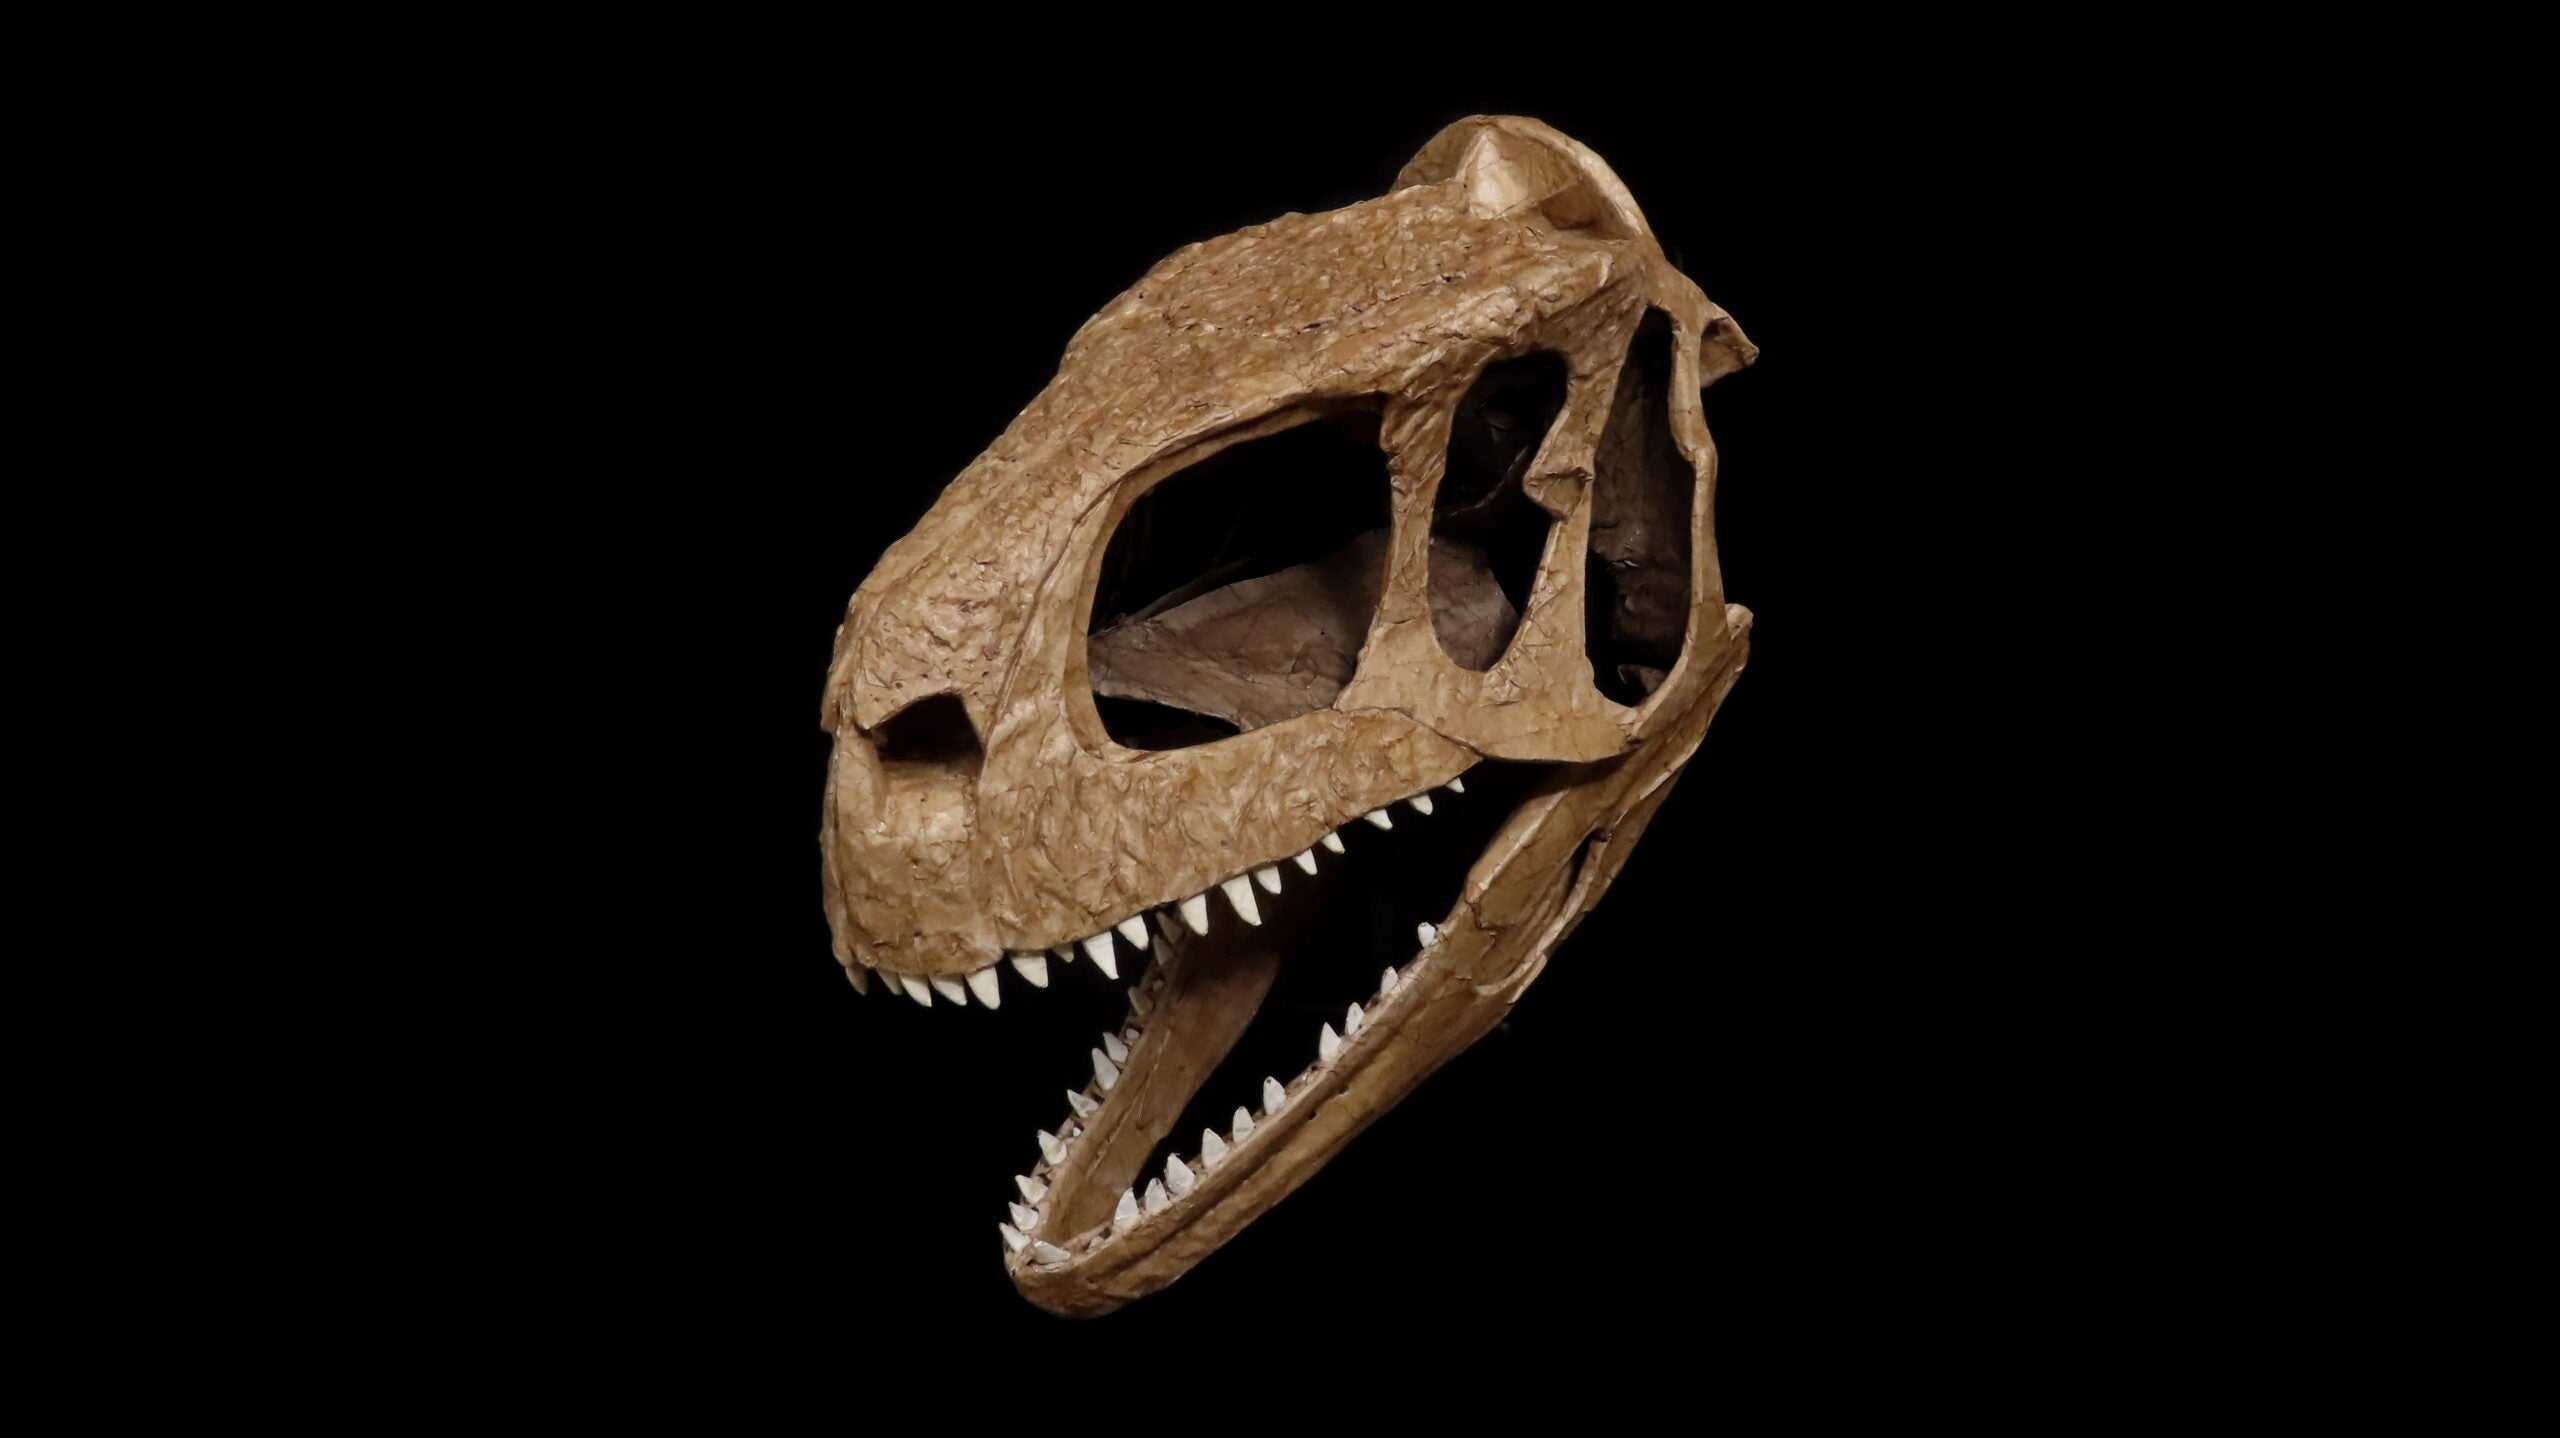 The fossilized skull of the newly discovered L. aliocranianus dinosaur.